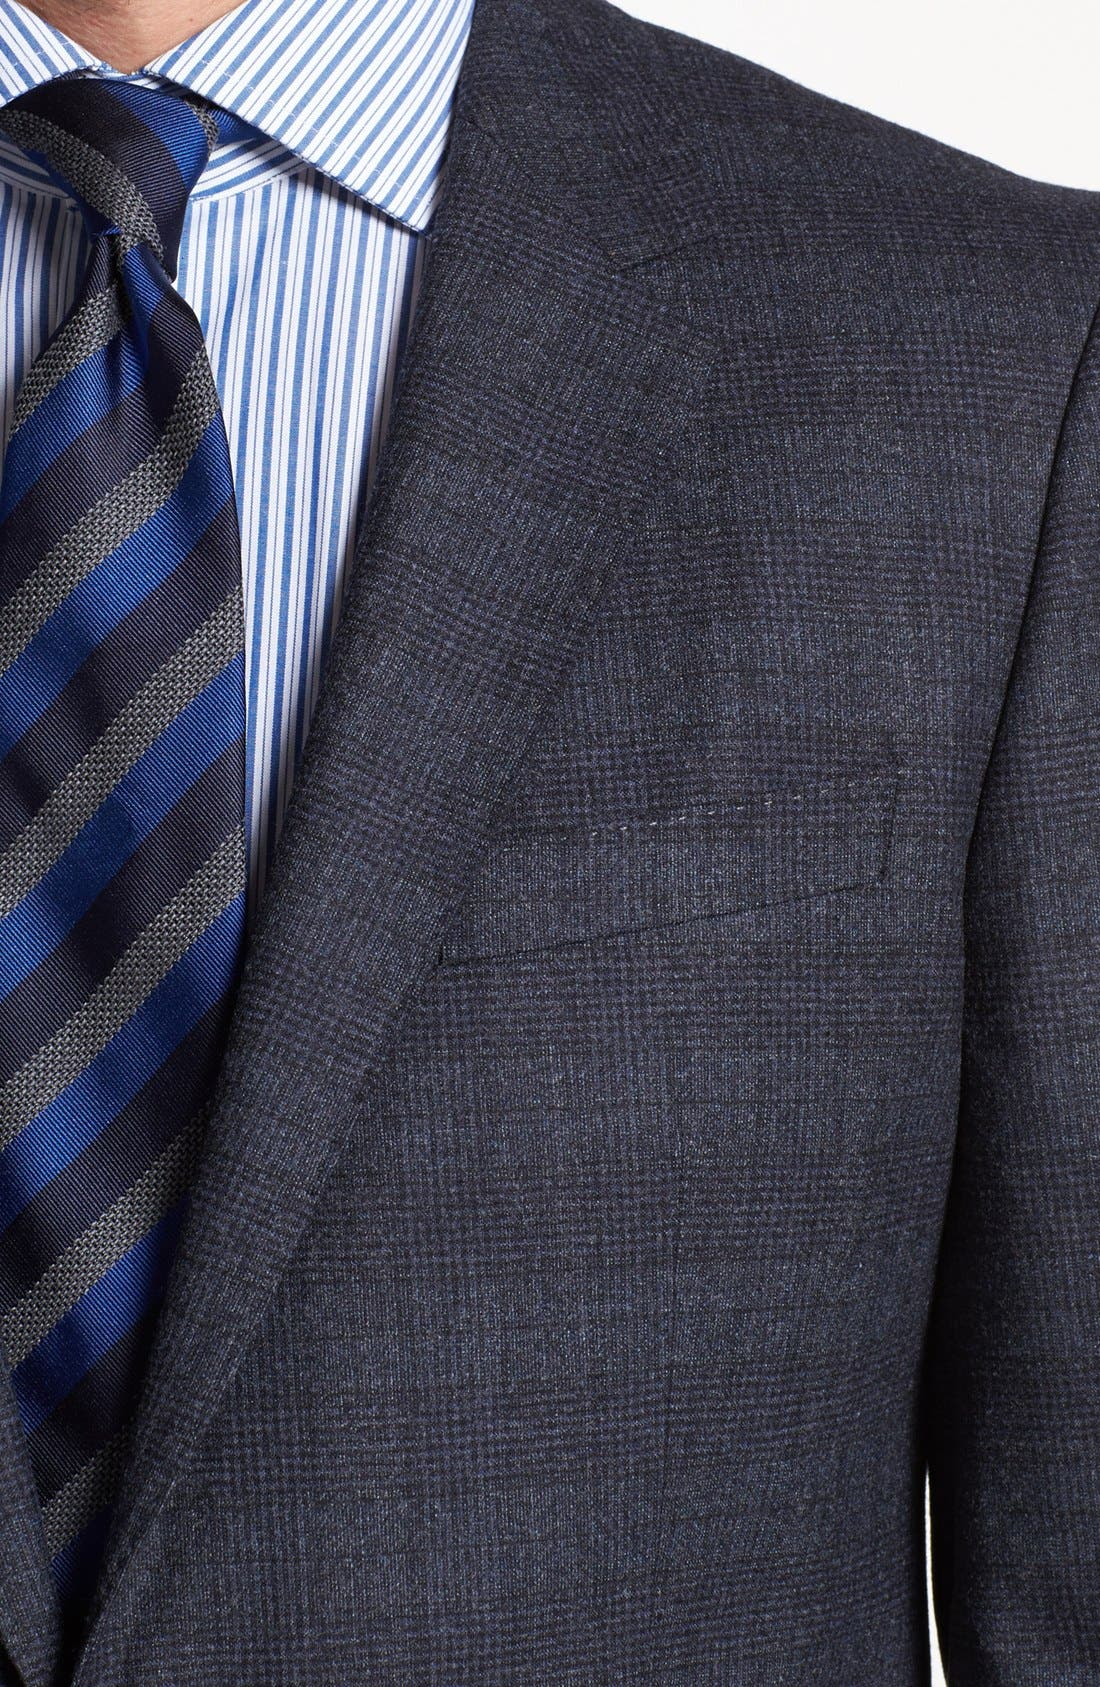 Alternate Image 2  - BOSS HUGO BOSS 'Hedge/Gense' Trim Fit Plaid Suit